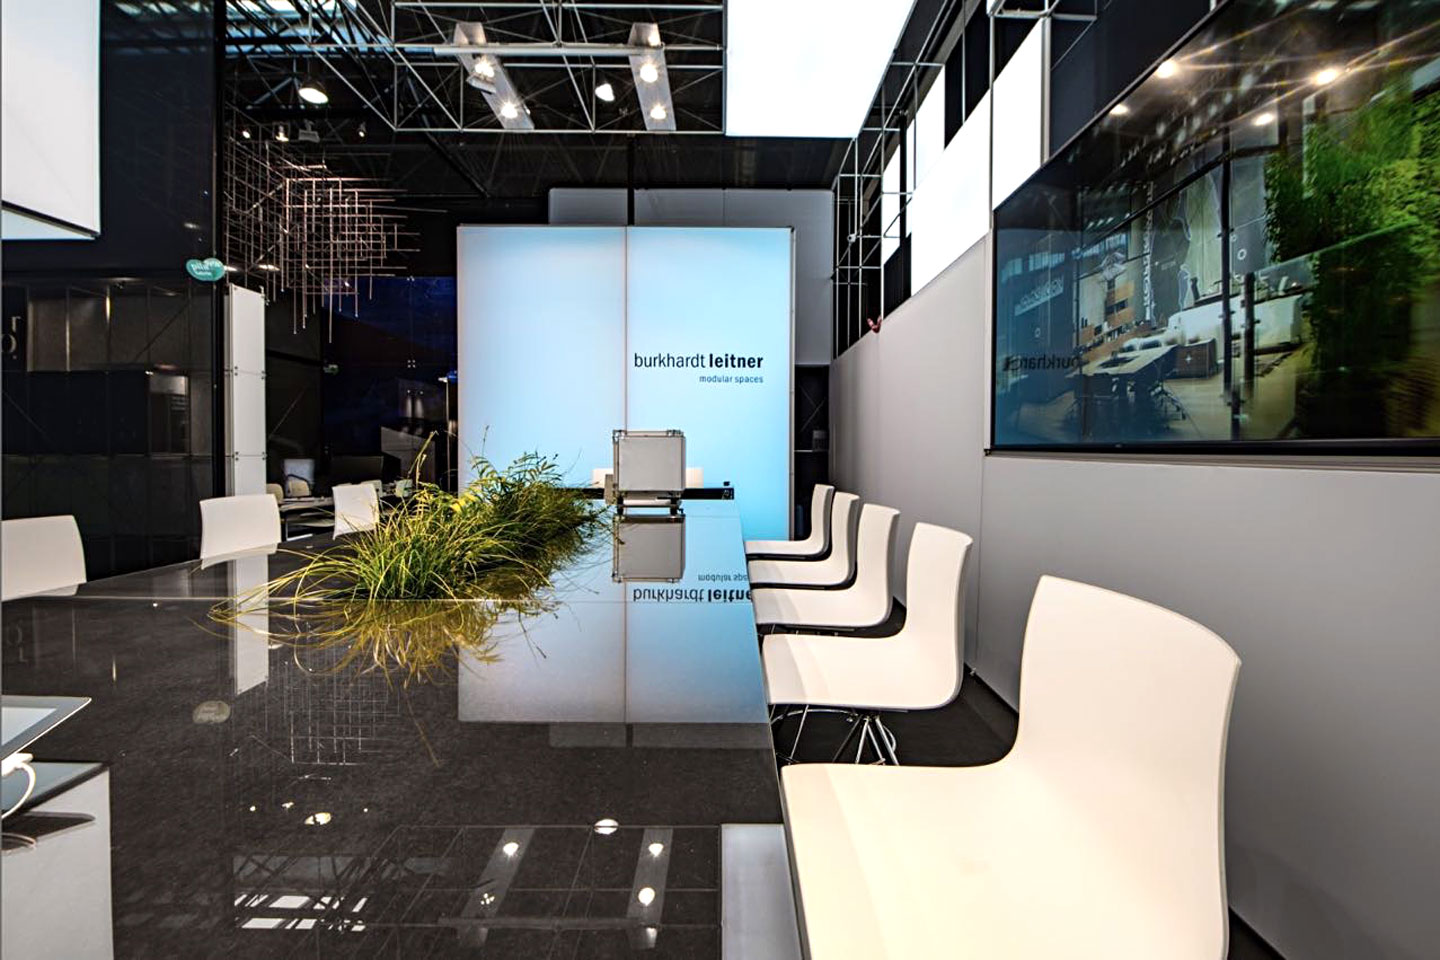 Thank you for your visit at Euroshop 2017